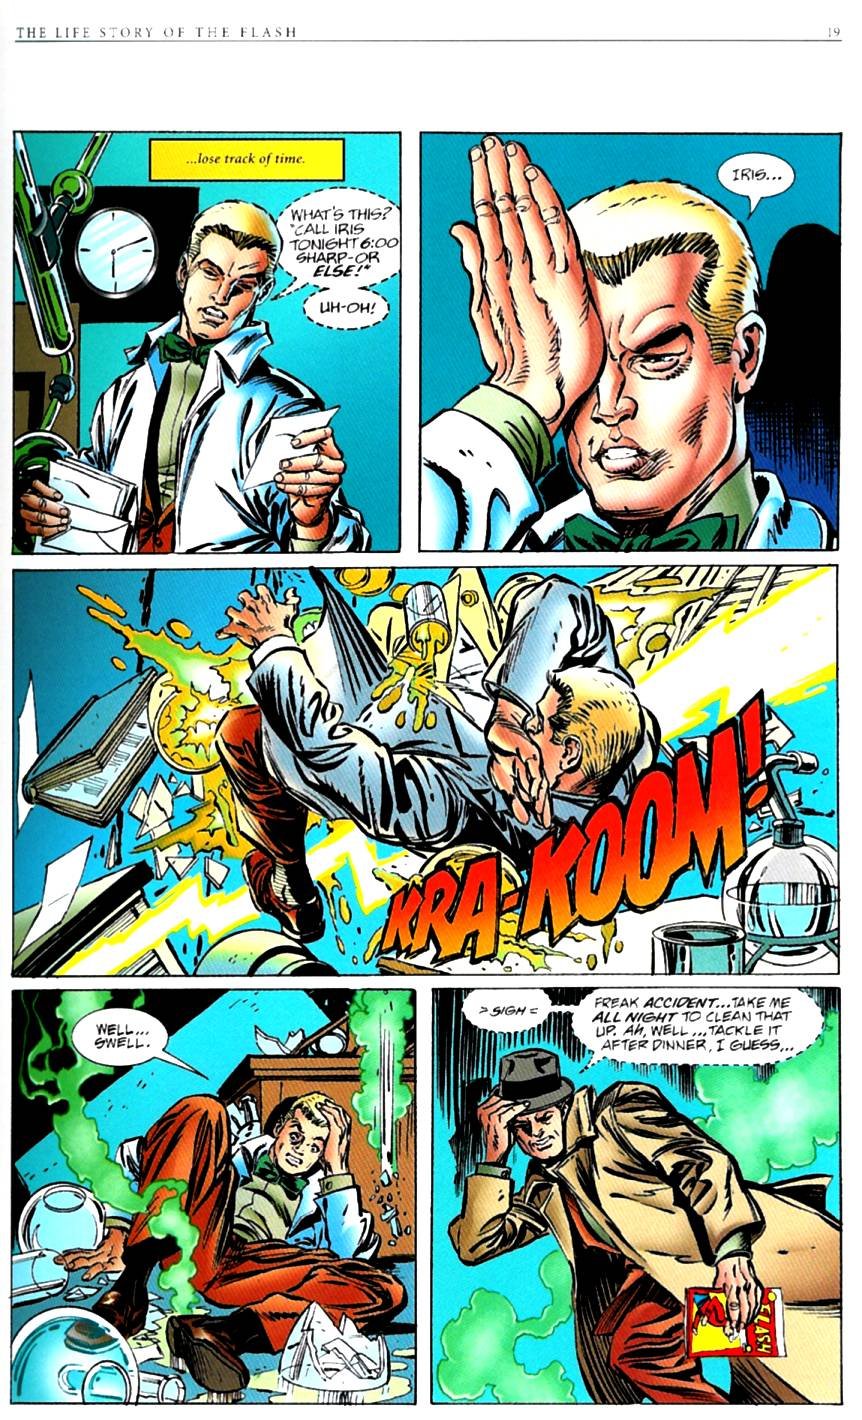 Read online The Life Story of the Flash comic -  Issue # Full - 21